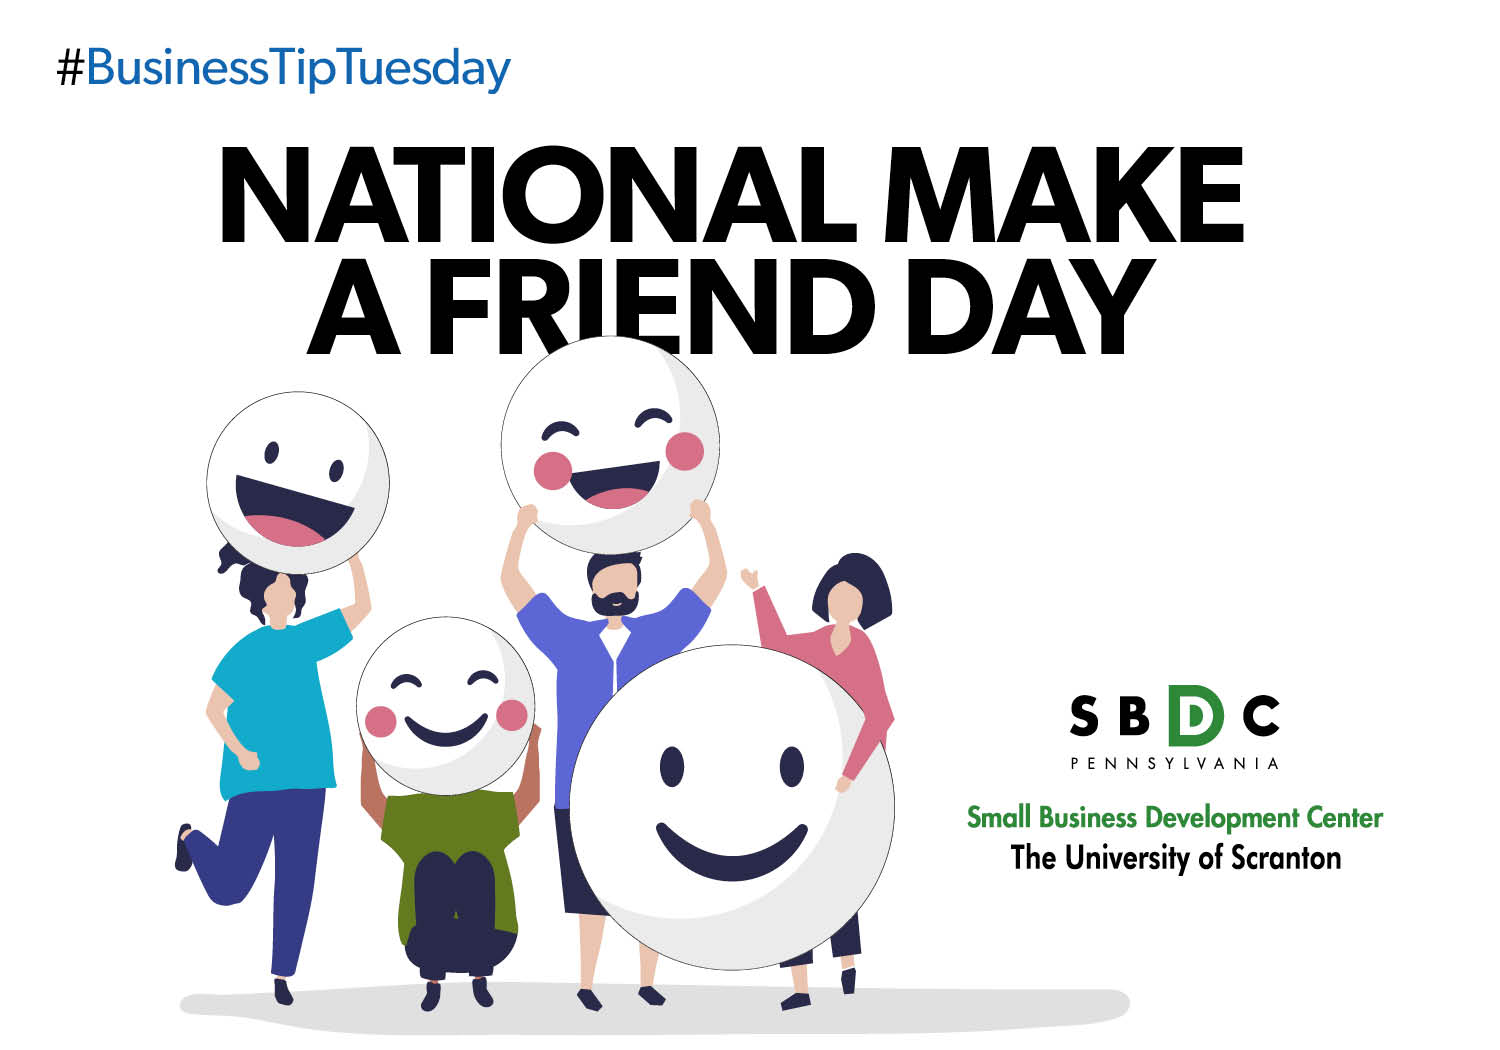 #BusinessTipTuesday – National Make a Friend Day